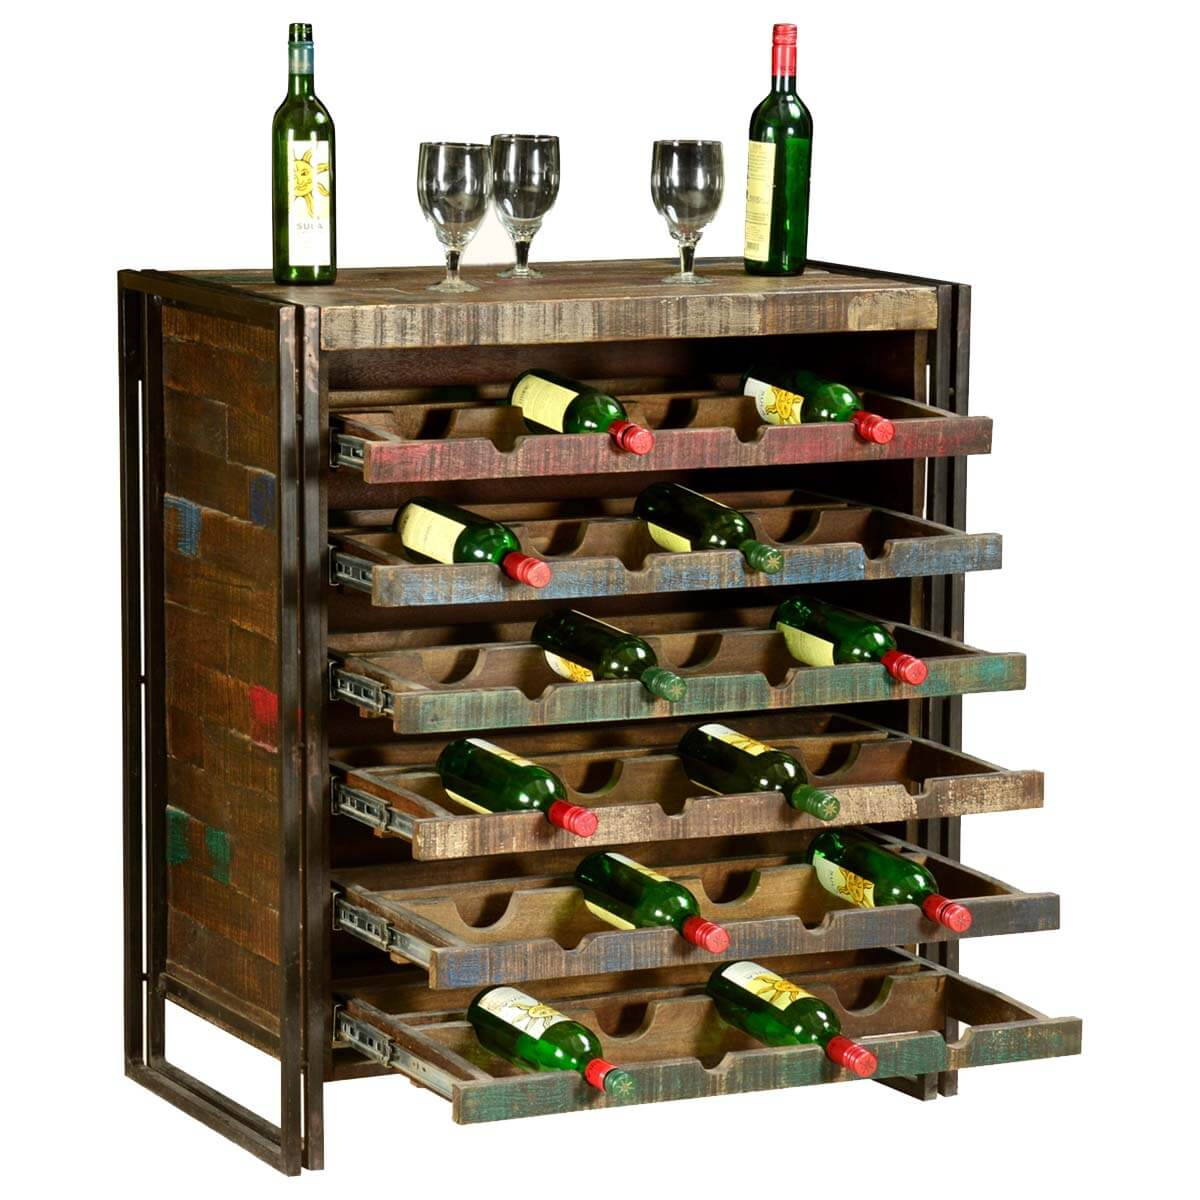 Wood Wine Storage Rustic Industrial Wooden Liquor Wine Storage Rack For 24